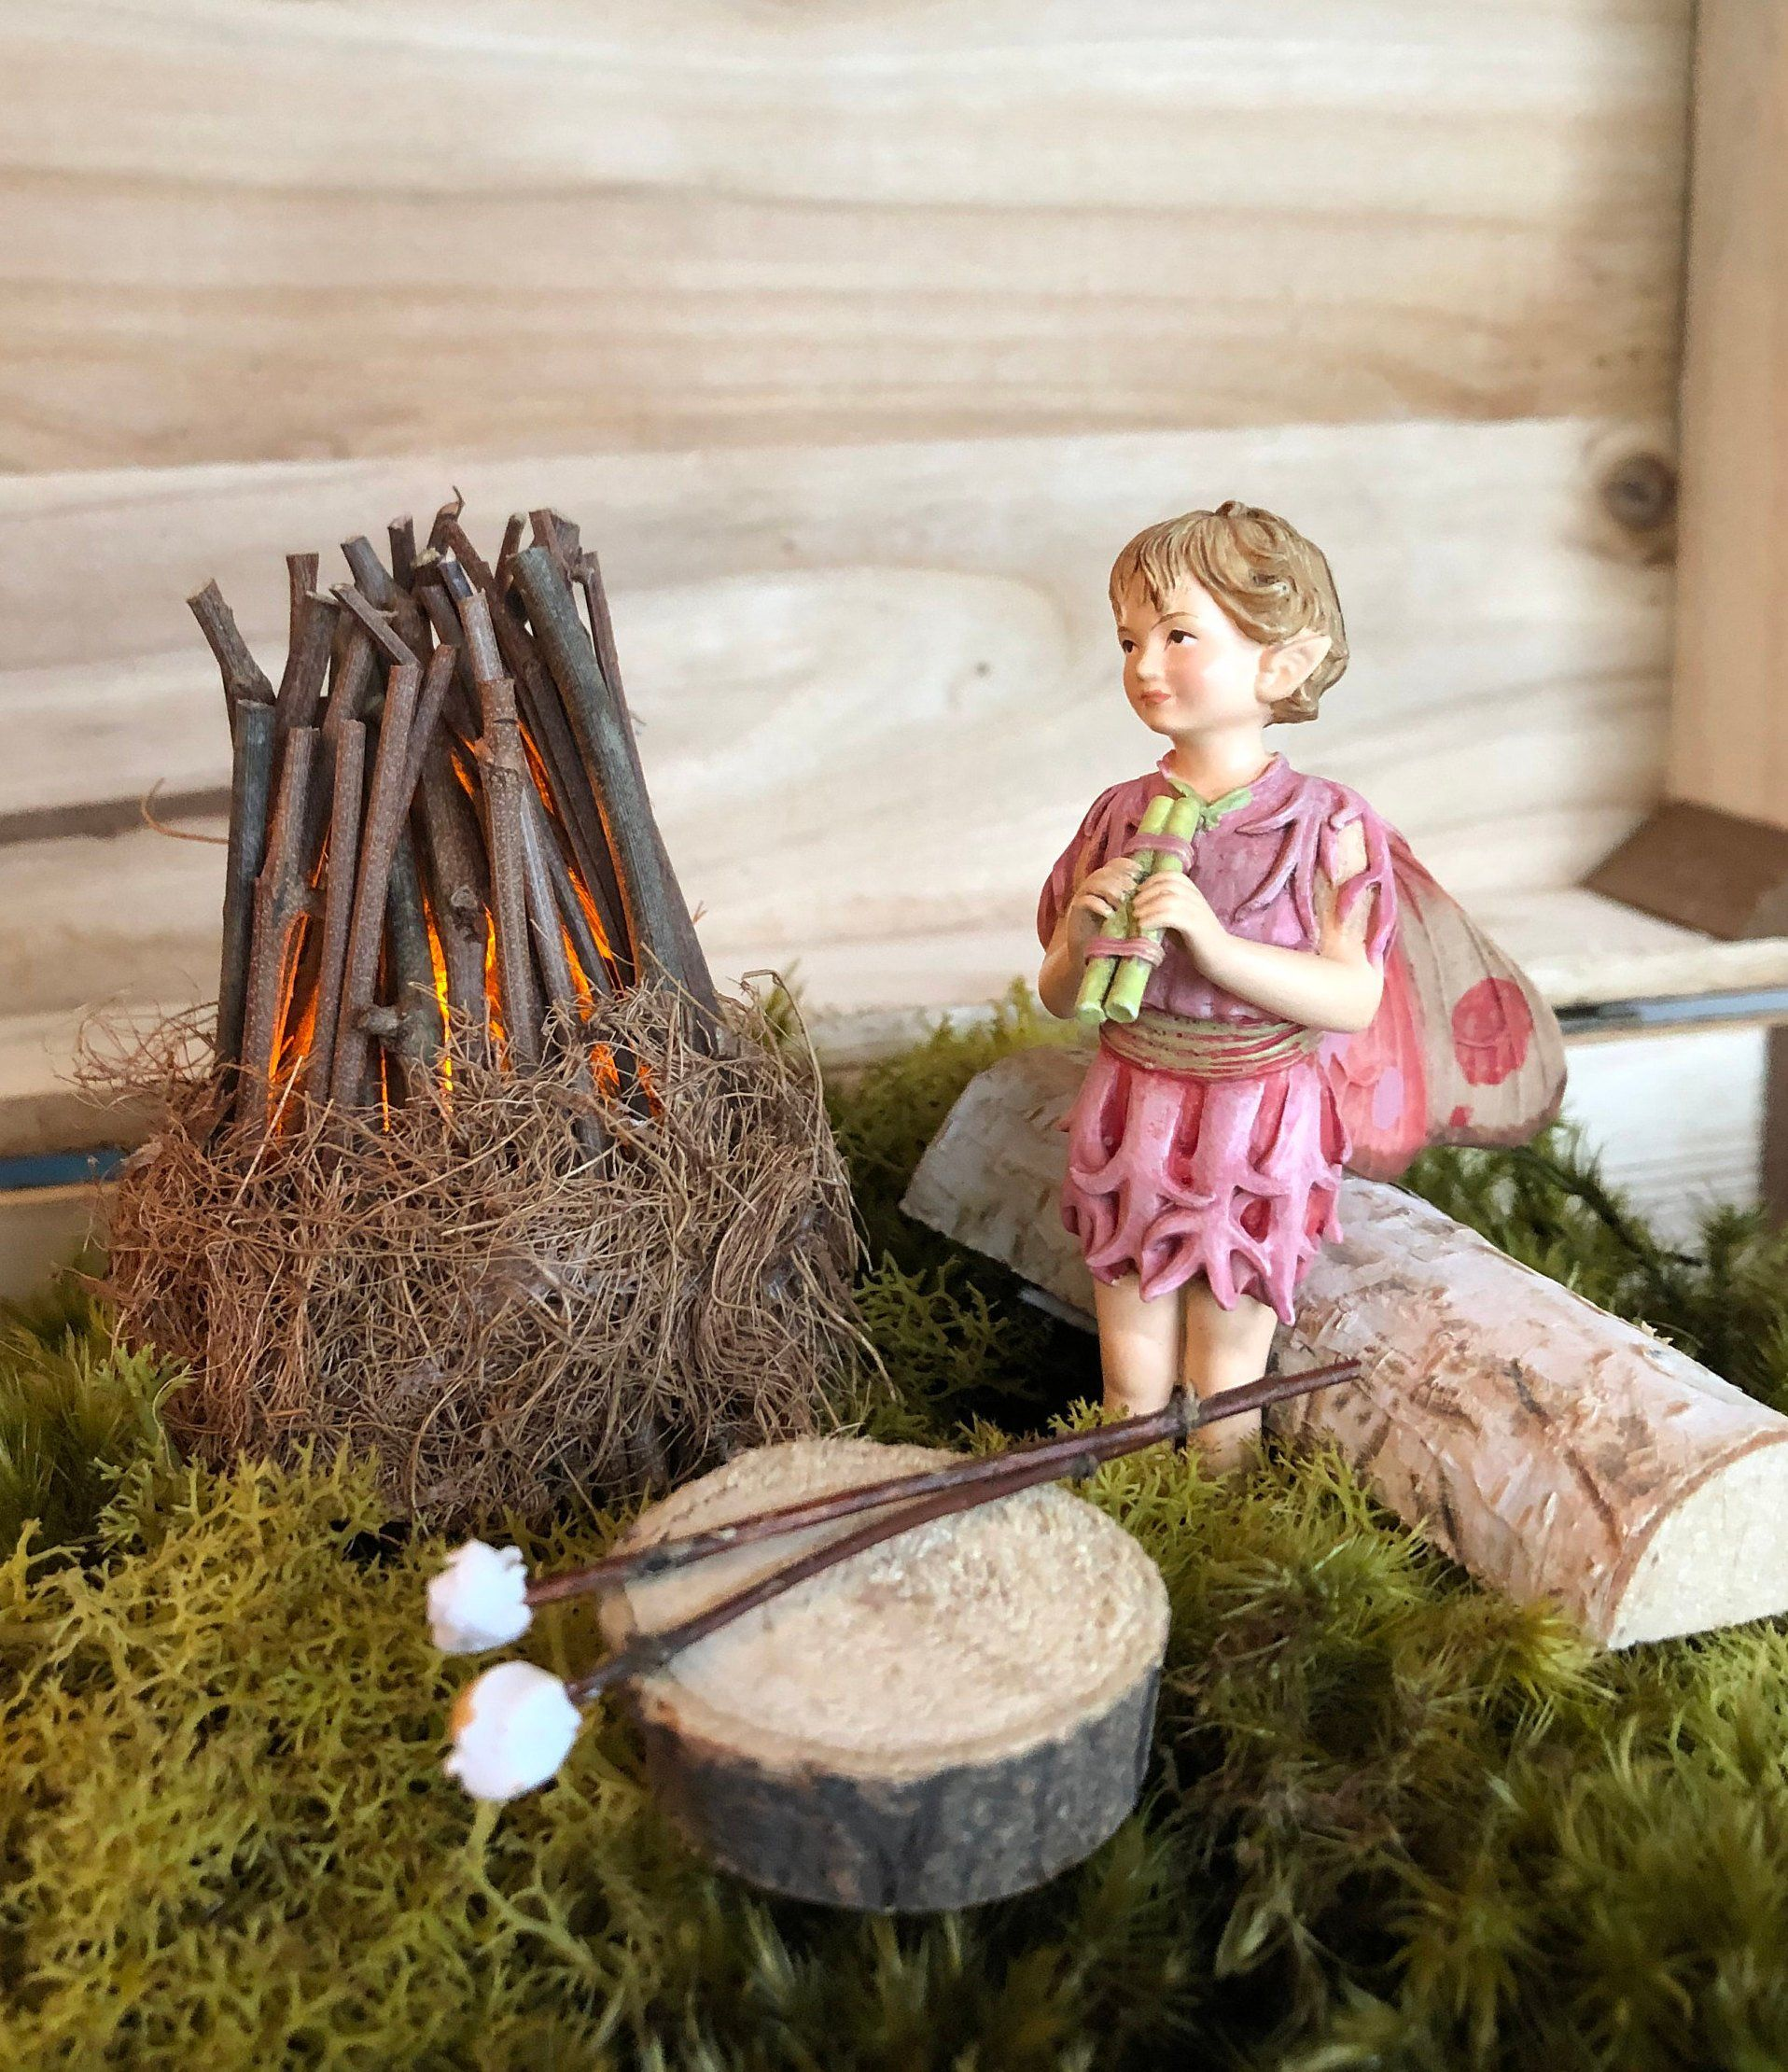 Miniature Campfire~ Marshmallow Sticks~ Fairy is Not Included~ Battery Operated Light by Olive~ Fairy Garden Fire Pit~ Fairy Garden Campfire #marshmallowsticks Miniature Campfire~ Marshmallow Sticks~ Fairy is Not Included~ Battery Operated Light by Olive~ Fairy Garden Fire Pit~ Fairy Garden Campfire #marshmallowsticks